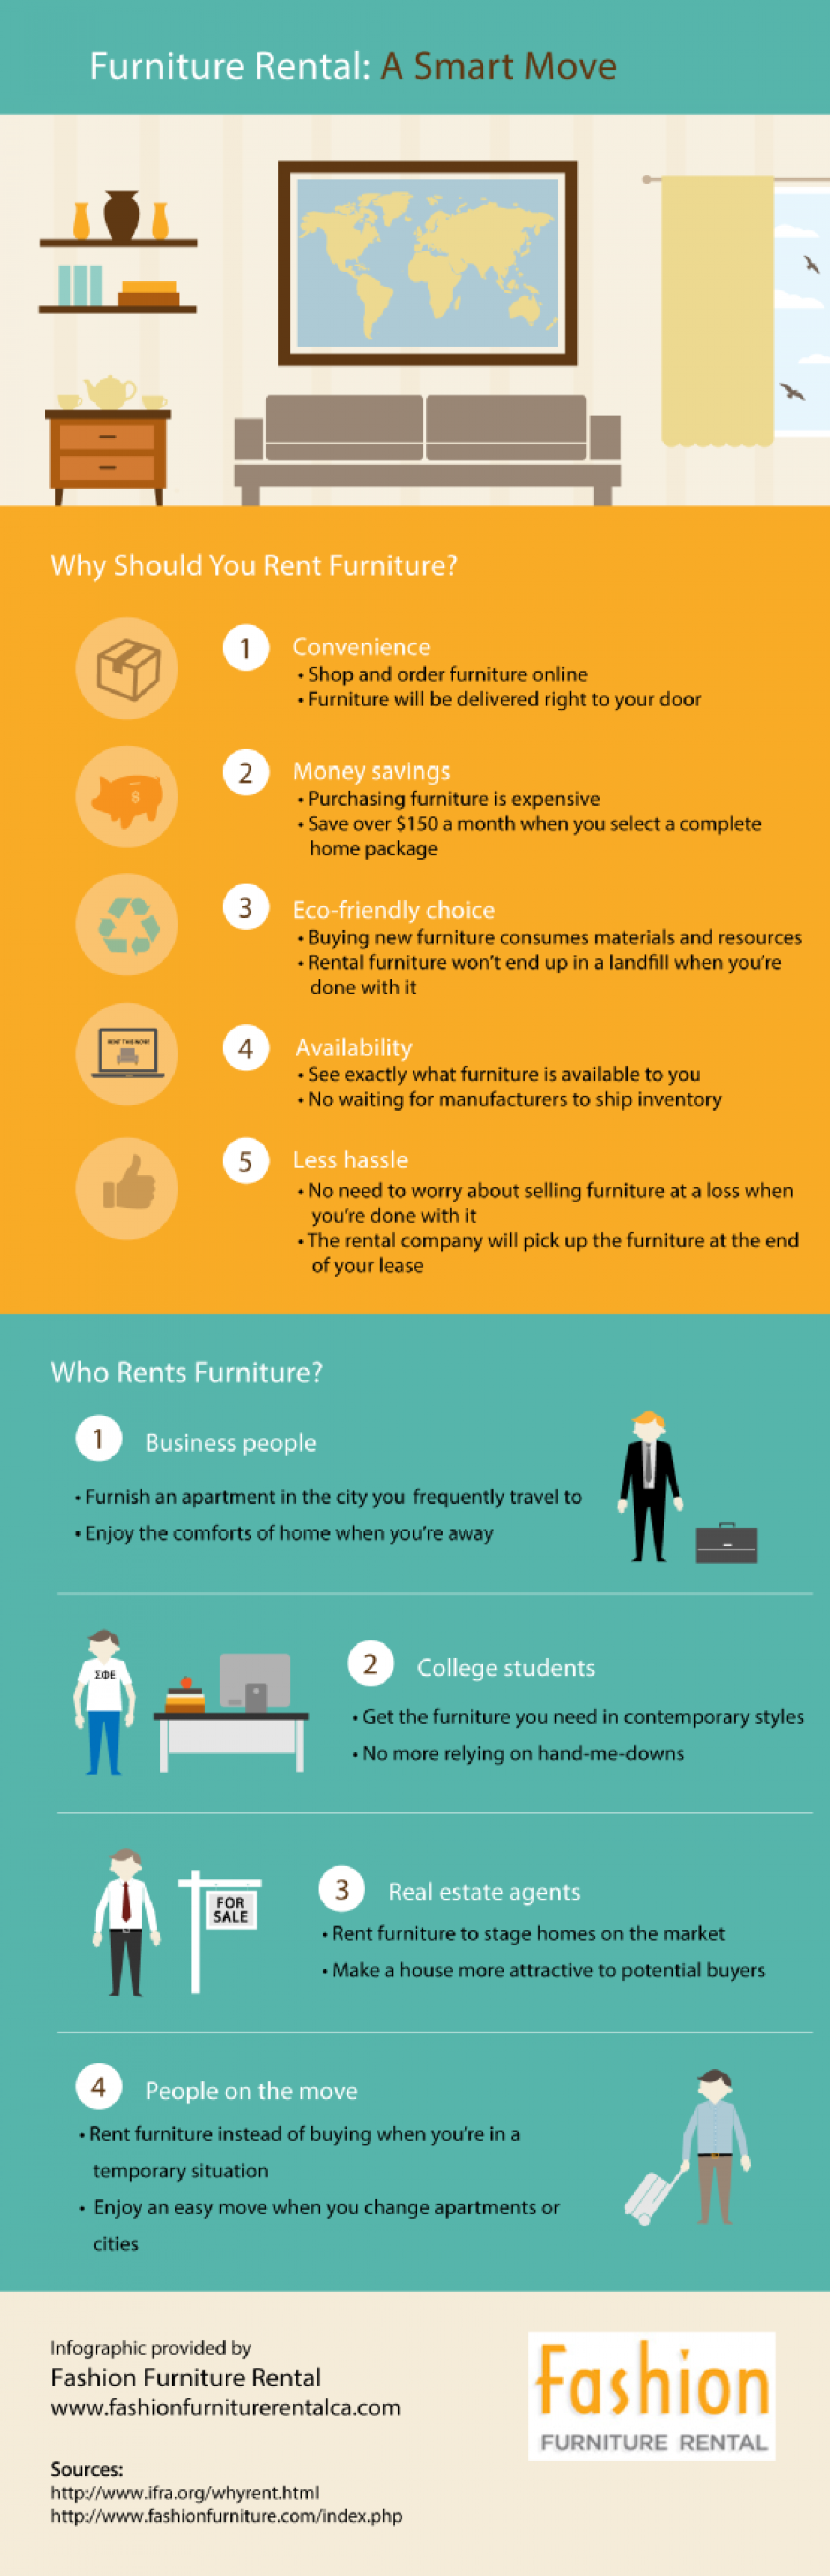 Furniture Rental: A Smart Move Infographic